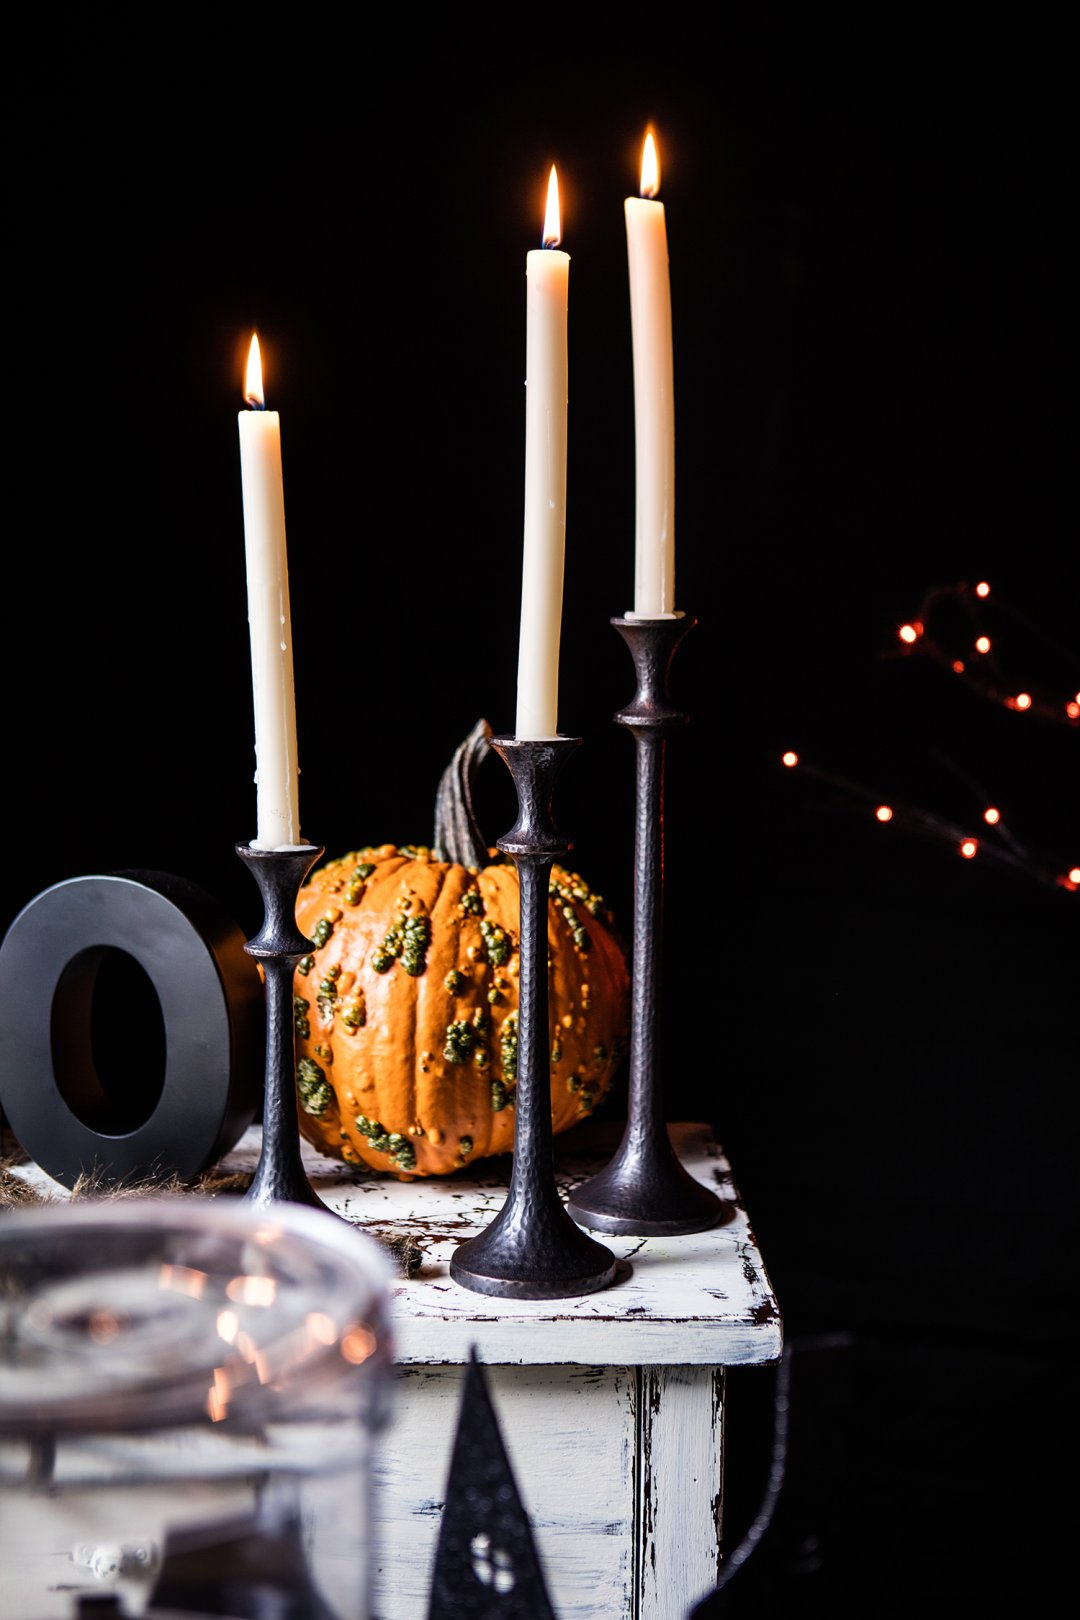 Tall, dripping taper candles on black candle holders